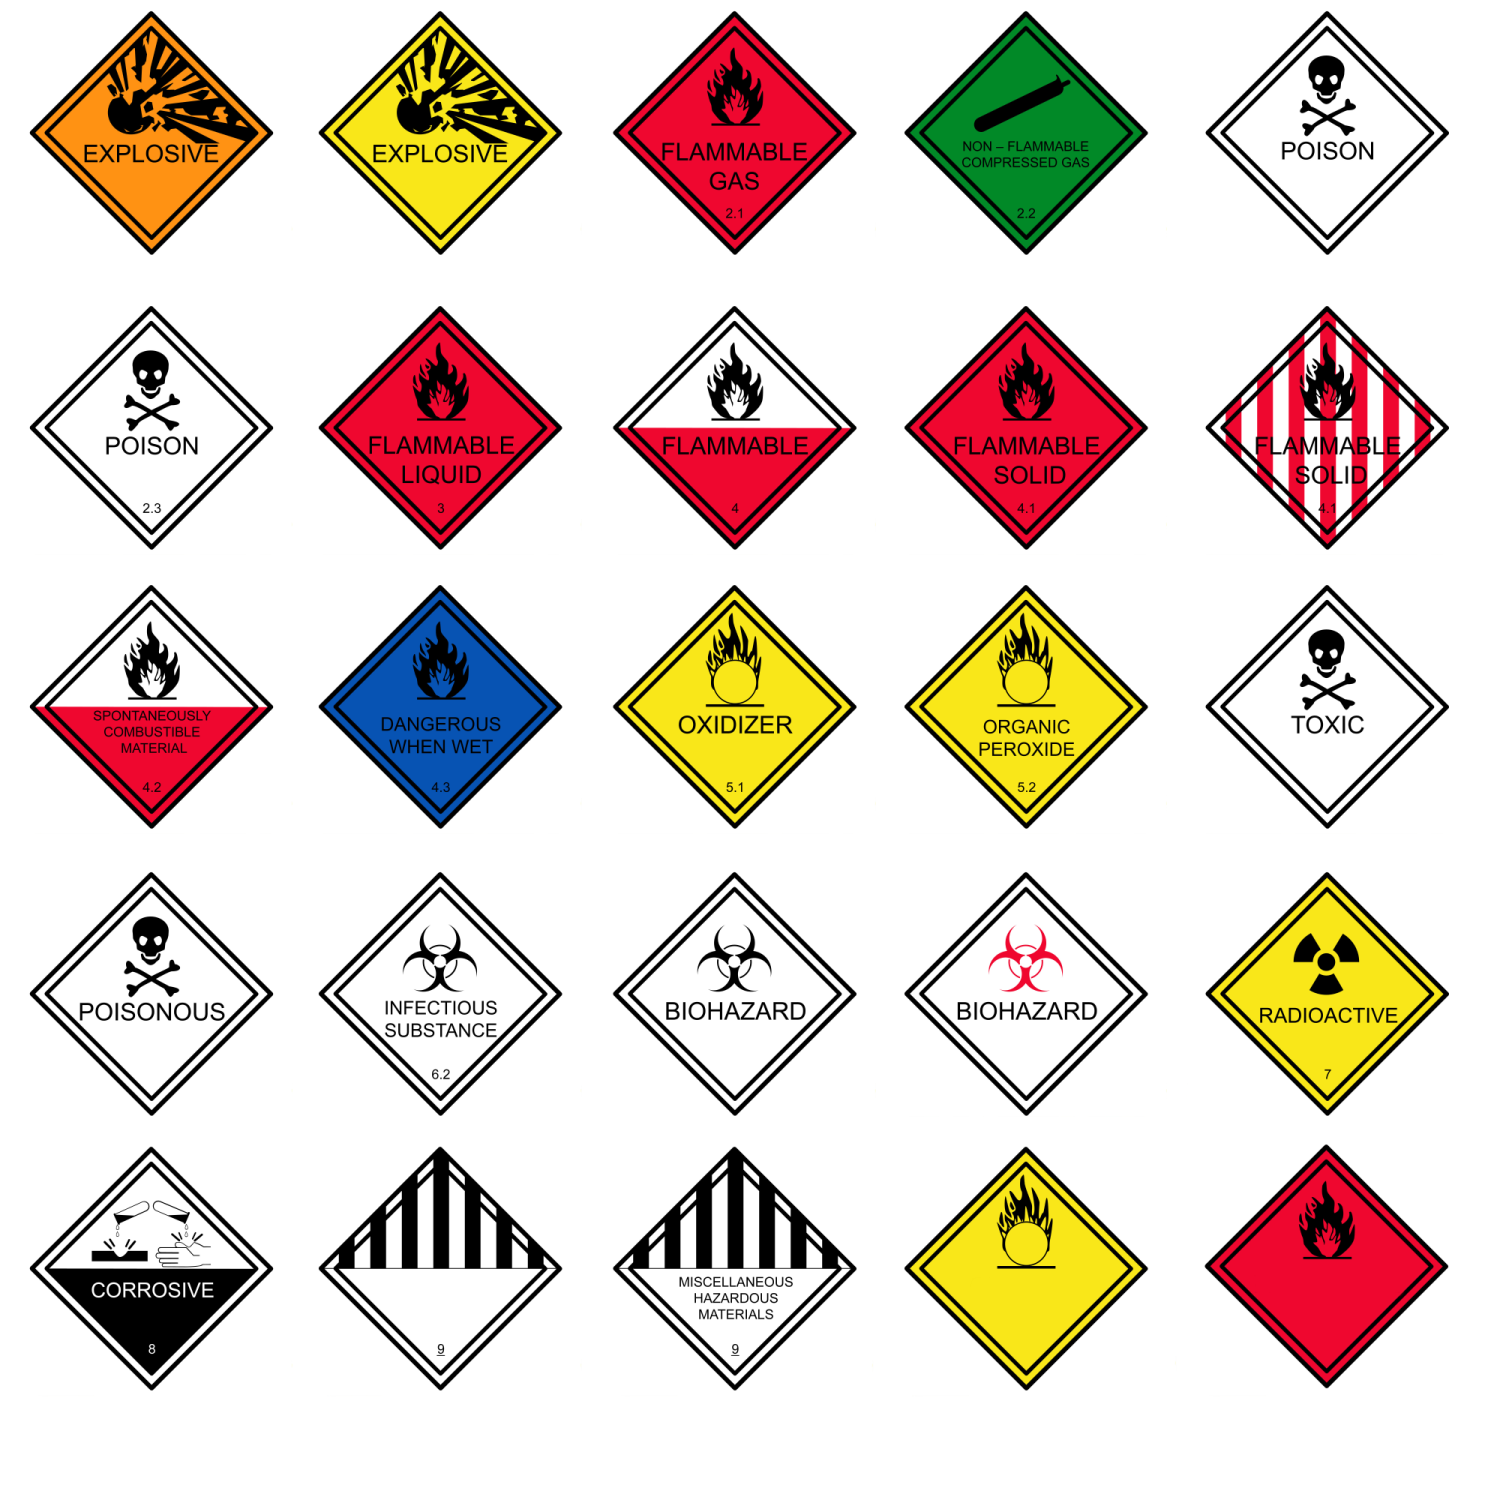 Slc foothill net cert hazardous material placecards for Waste material items